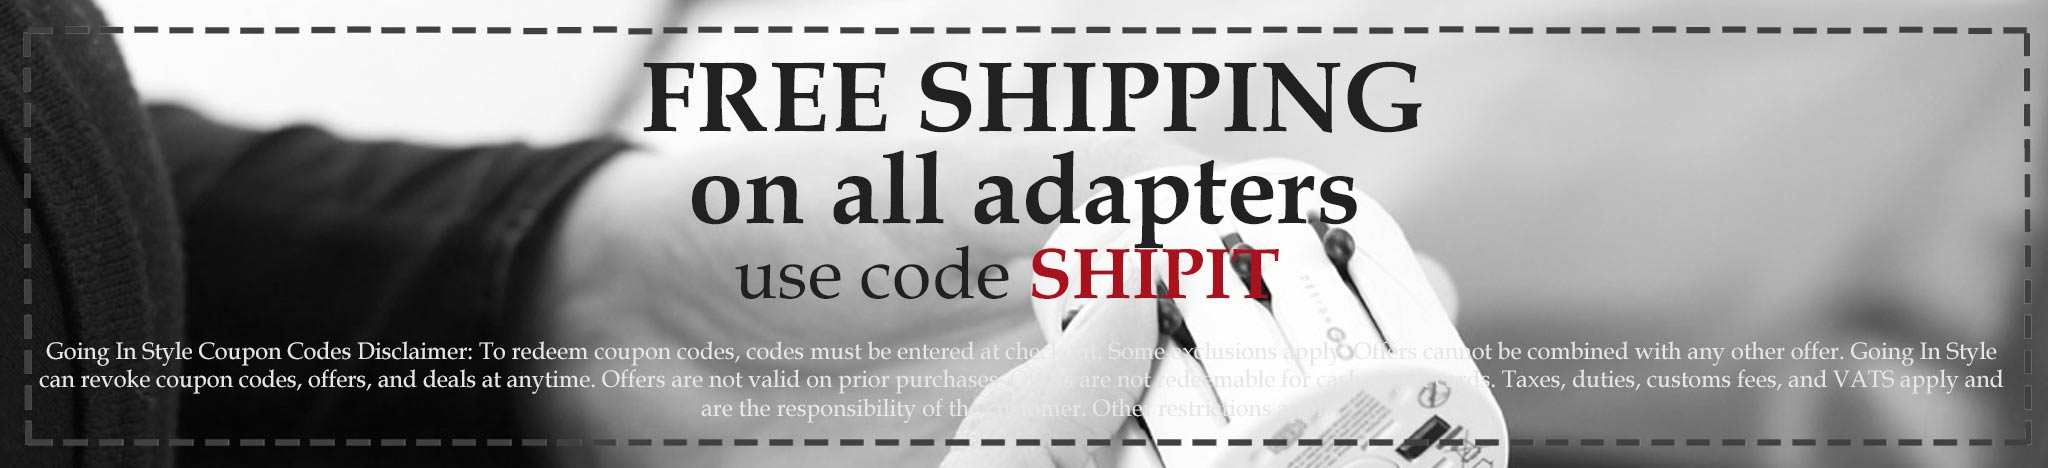 coupon free shipping on adapters